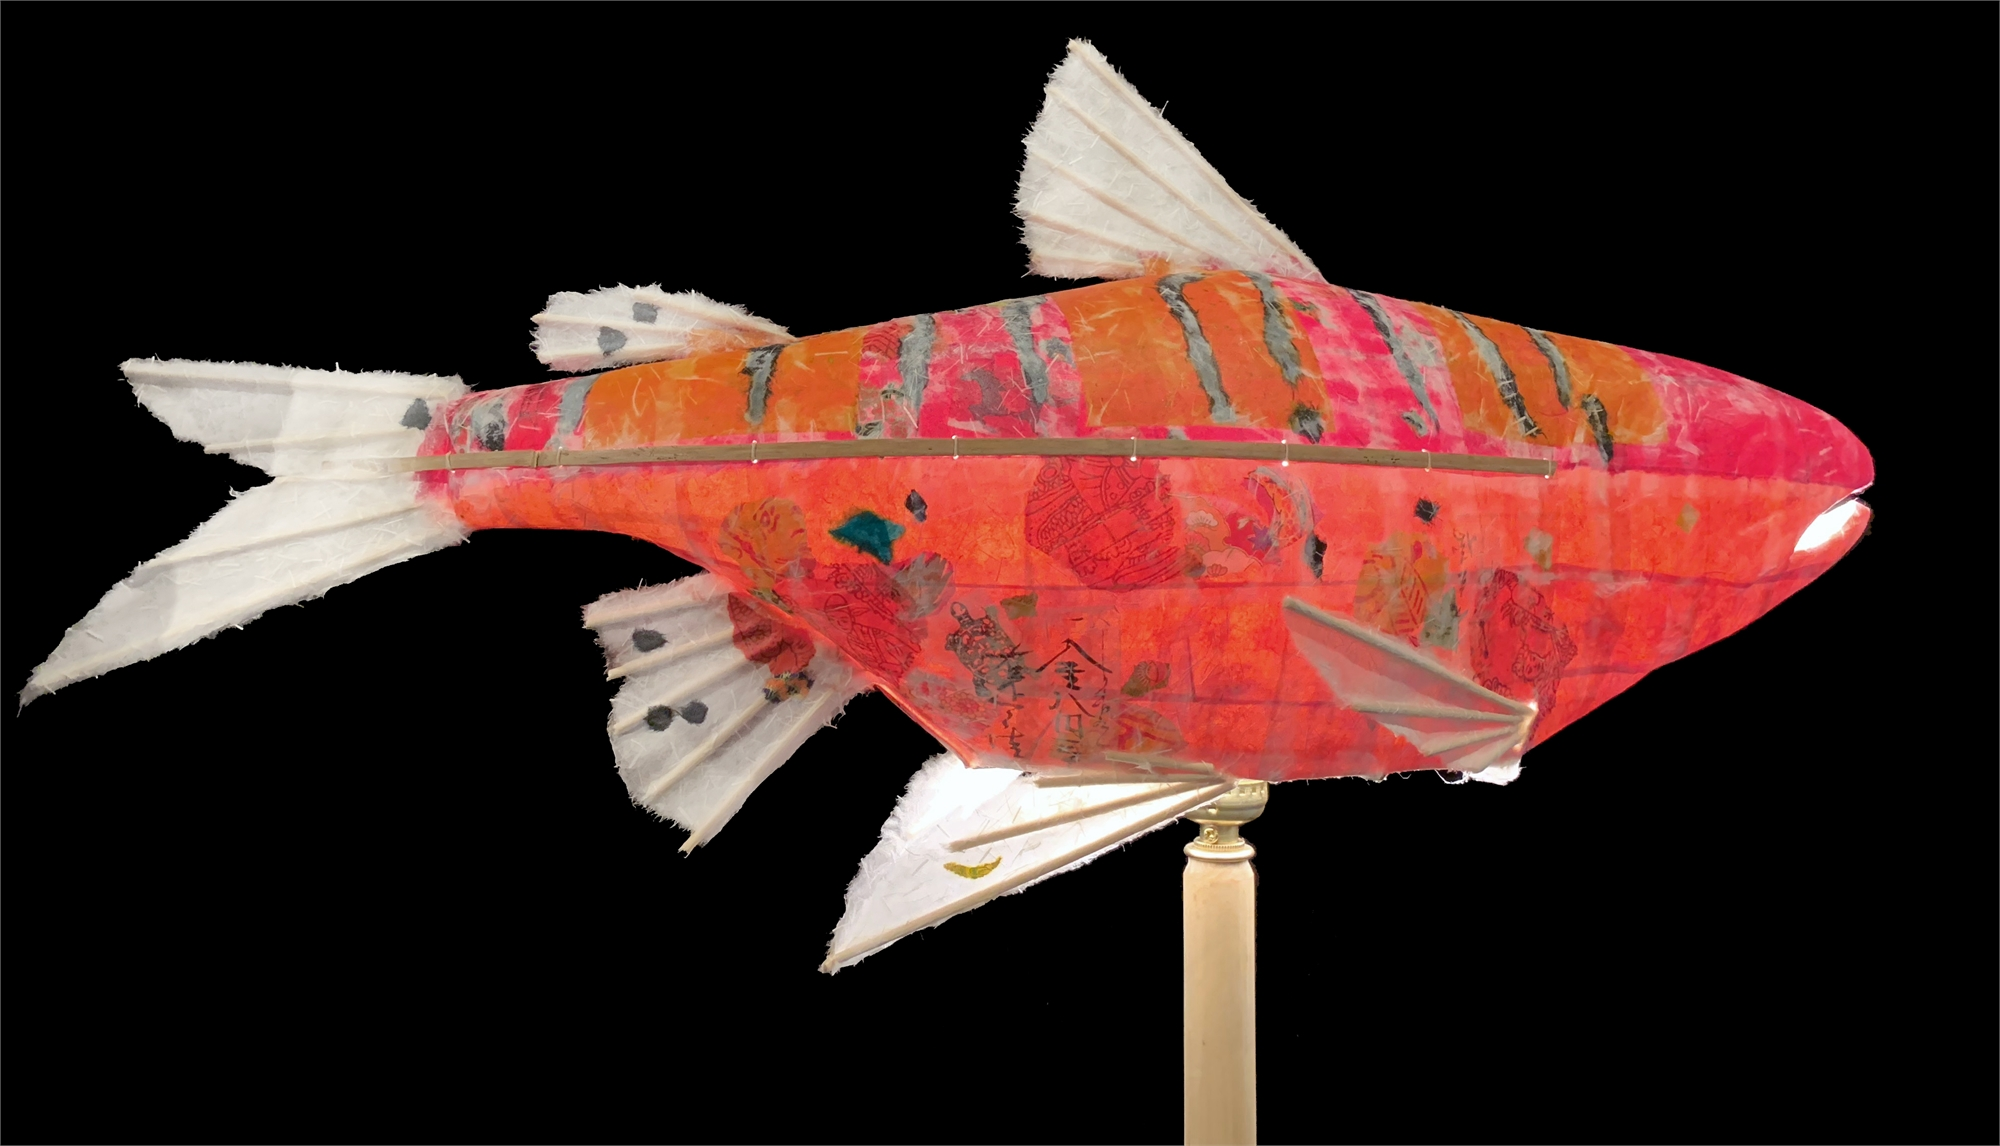 Tiger Stripe Salmon by Elaine Hanowell